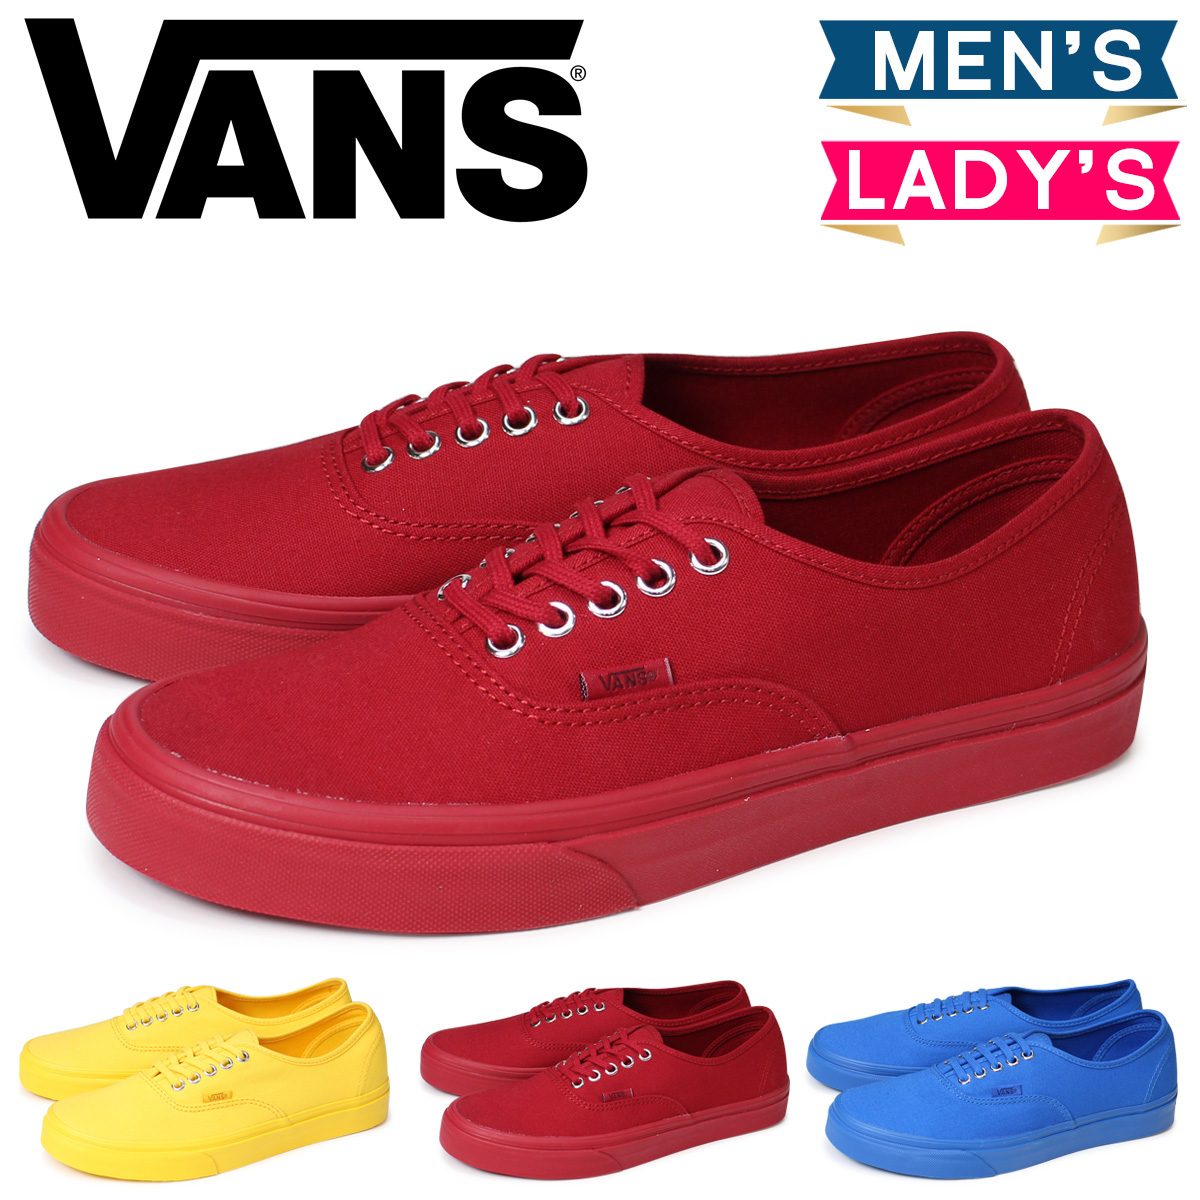 authentic vans all red